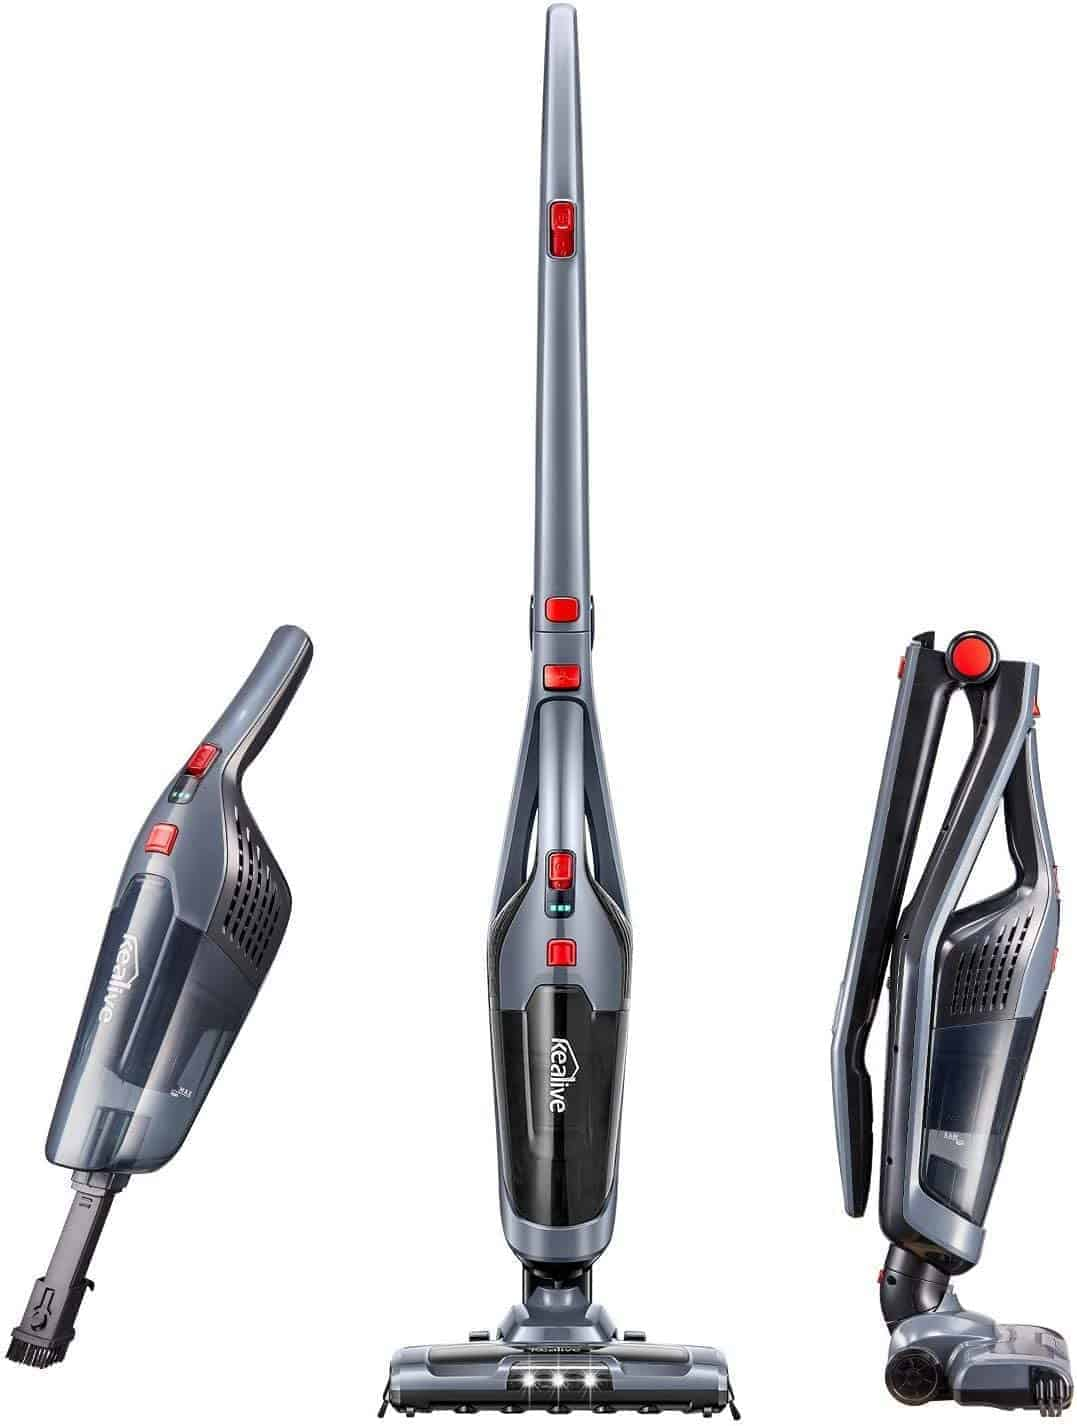 Best 2 in 1 handheld vacuum stick for under $100: Deik for carpet & pet hair